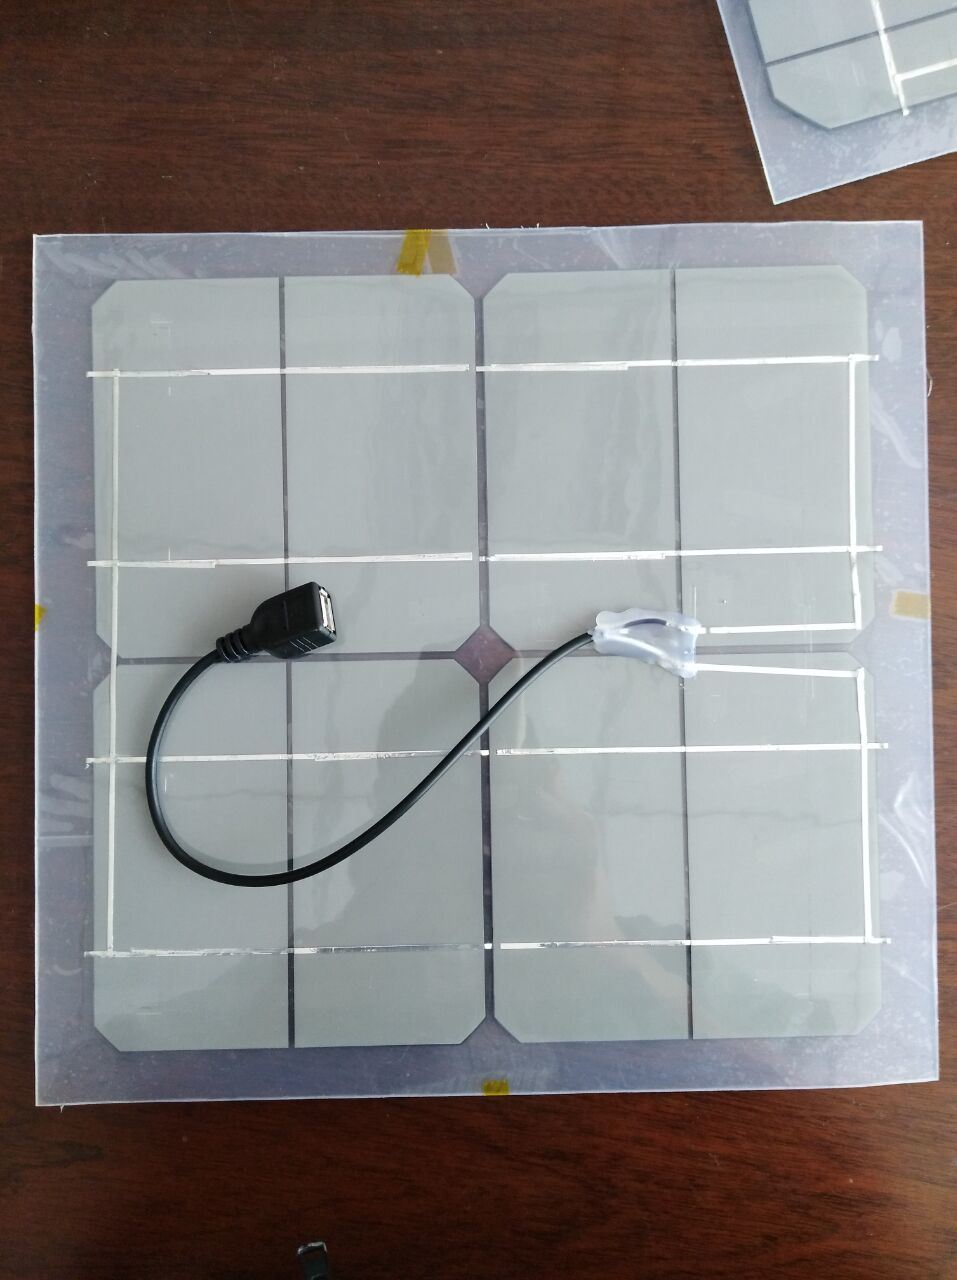 Transparent Soft Solar Panel China Fans Wiring Size Usb Wire Output Female Plug1m Size5502802mm Transparent4 Holes With Copper Pinsoptional Eva Pet Usd160 Pc